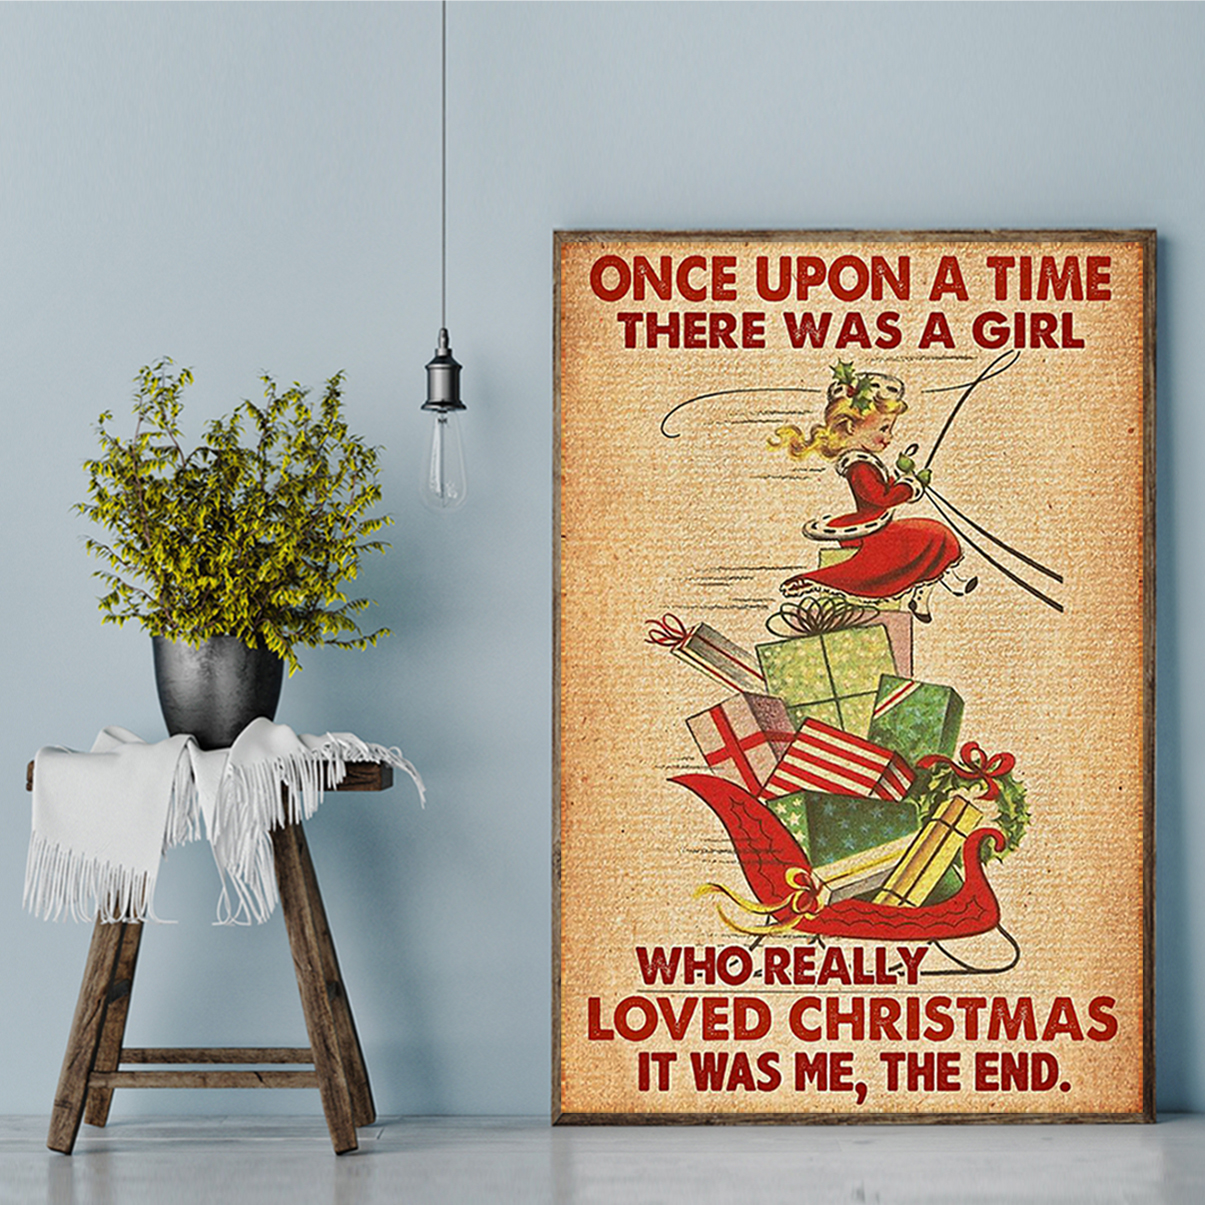 Once upon a time there was a girl who really loved christmas it was me the end poster A3